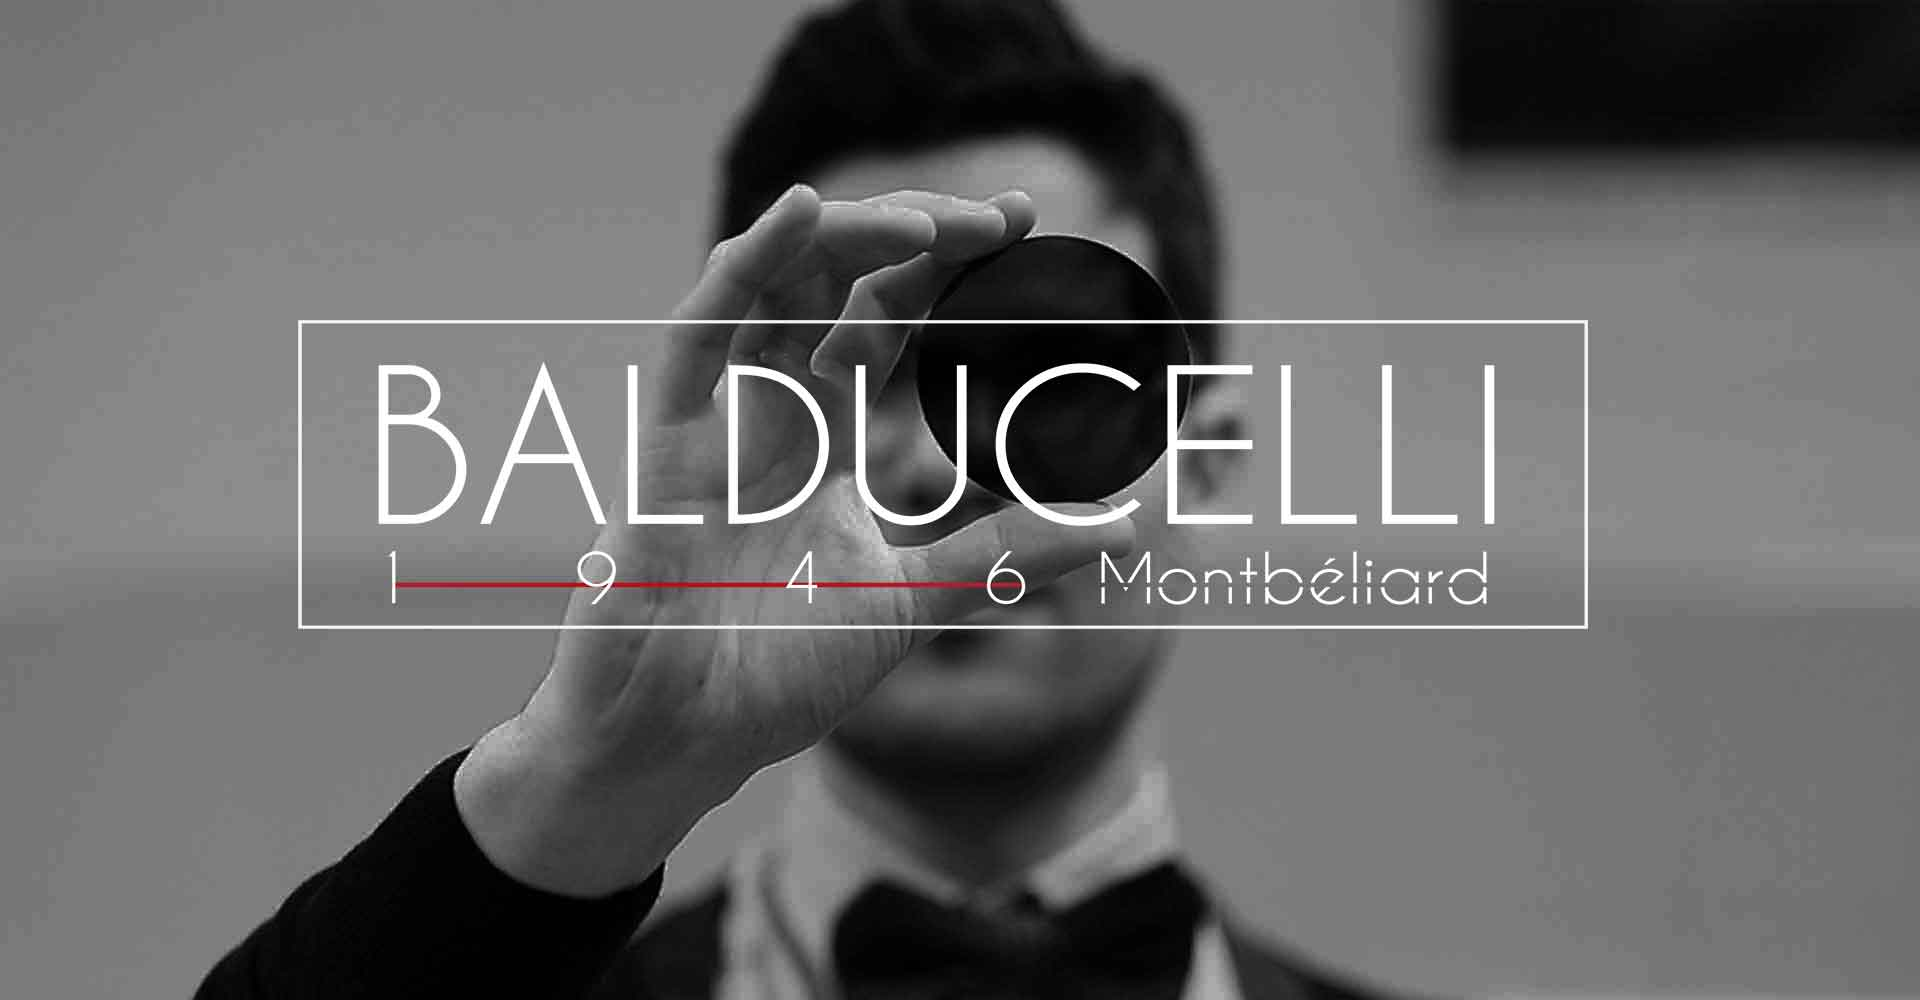 Bienvenue chez balducelli opticiens montbéliard 1946